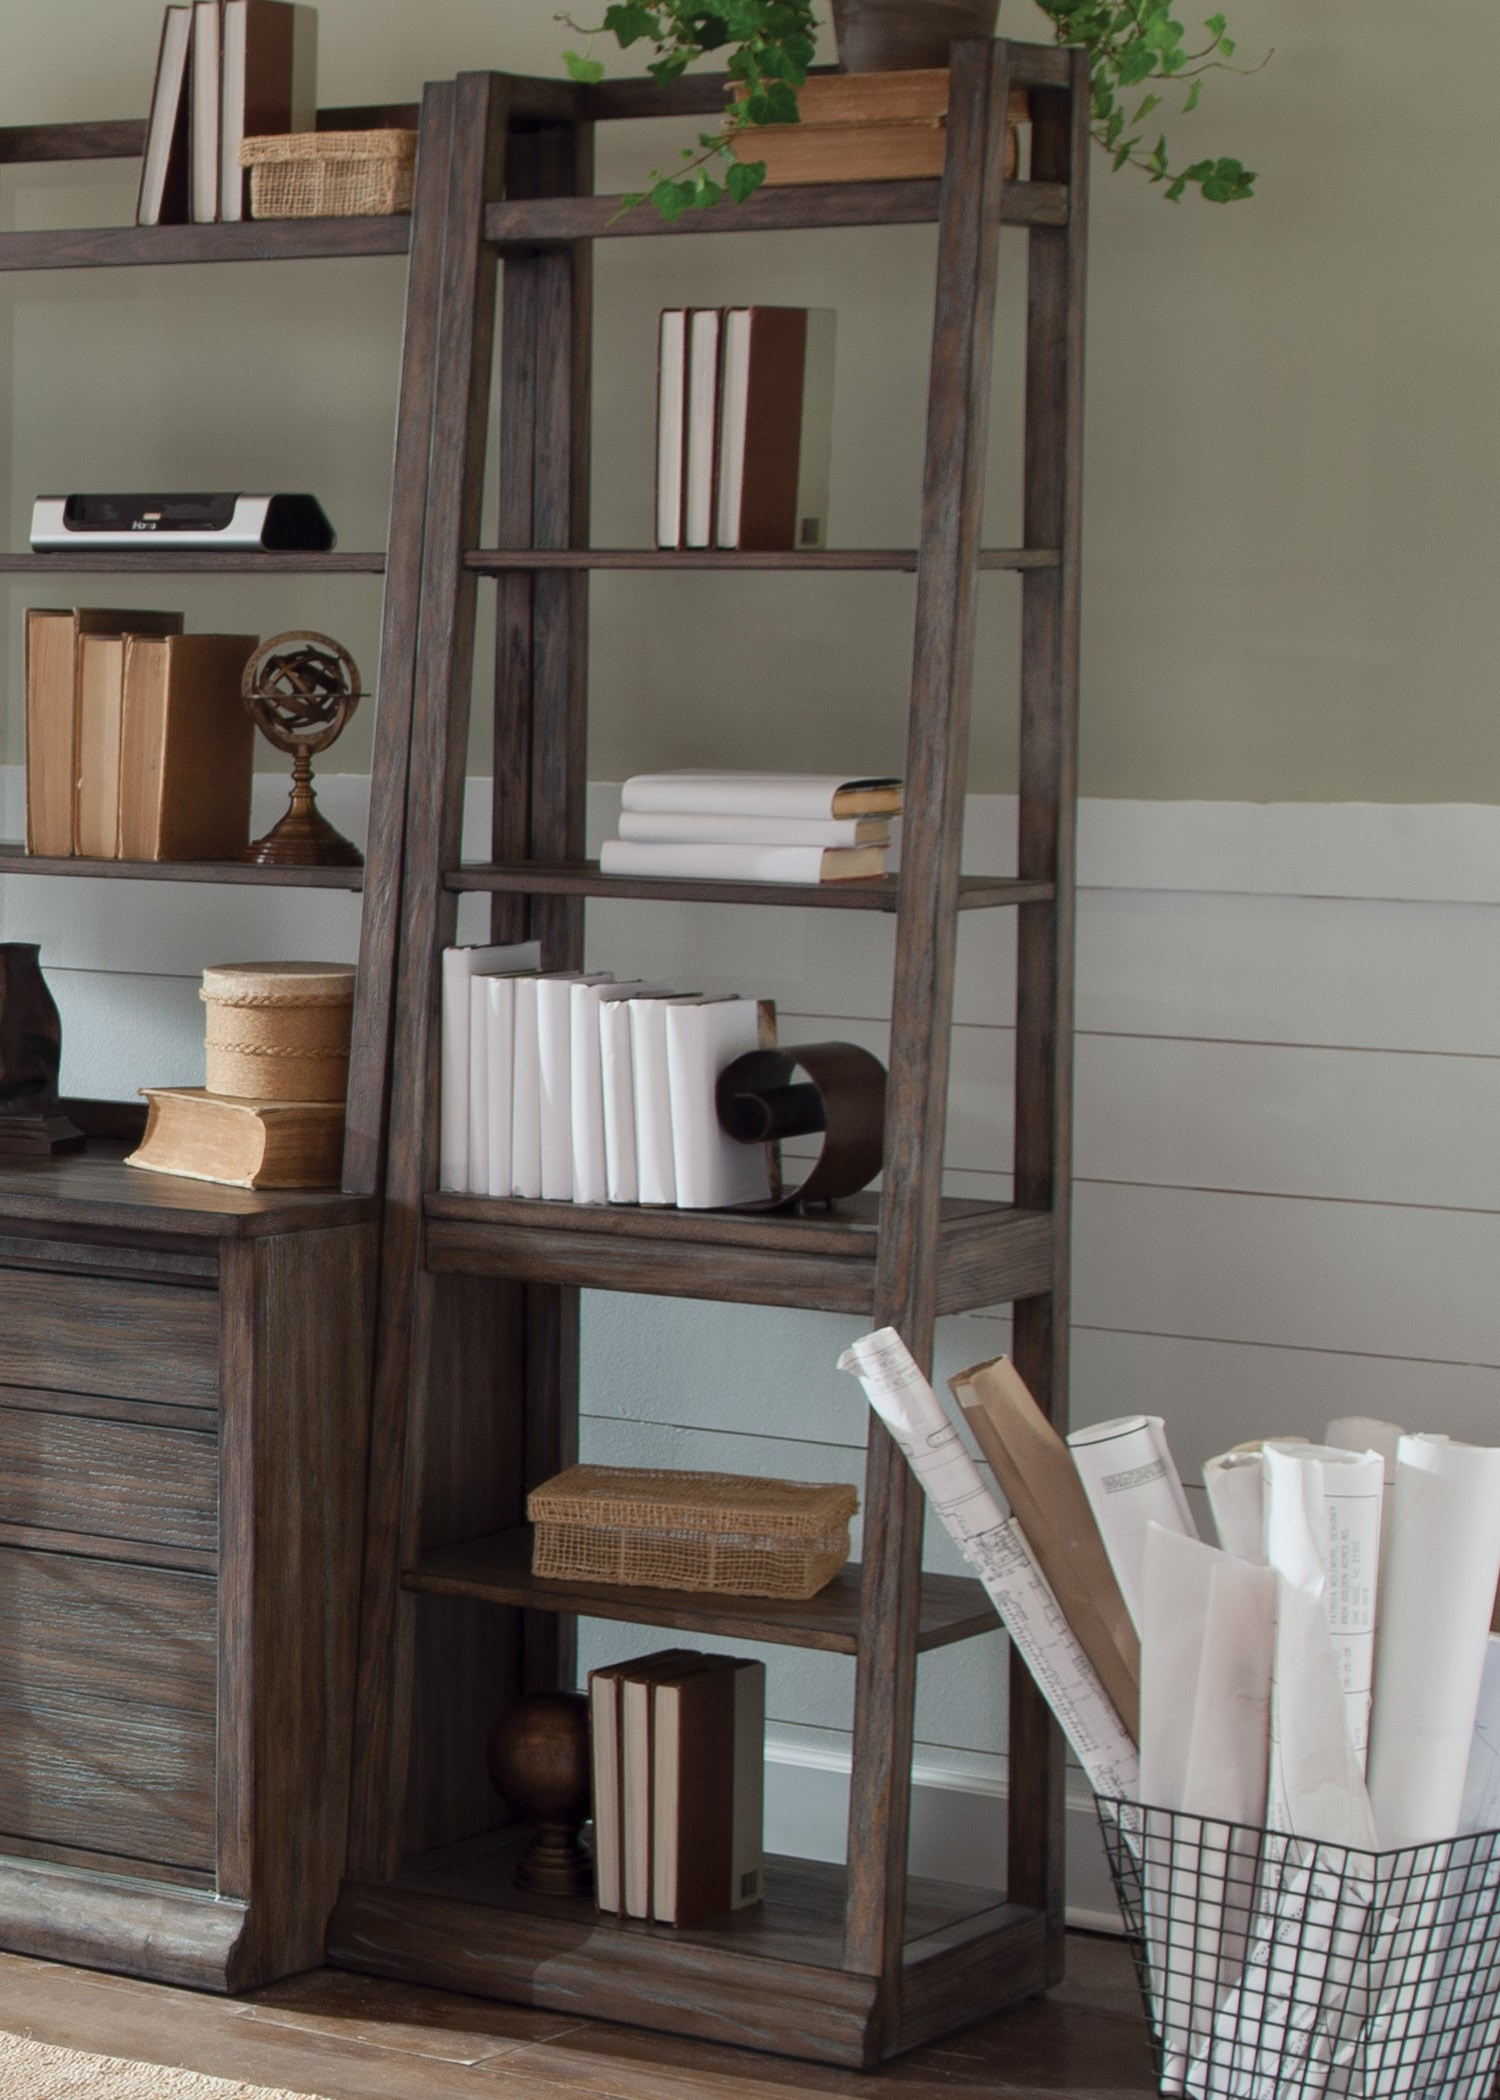 Rustic Americana Hardwood Executive Desk Home Office: Stone Brook Rustic Saddle Leaning Bookcase From Liberty